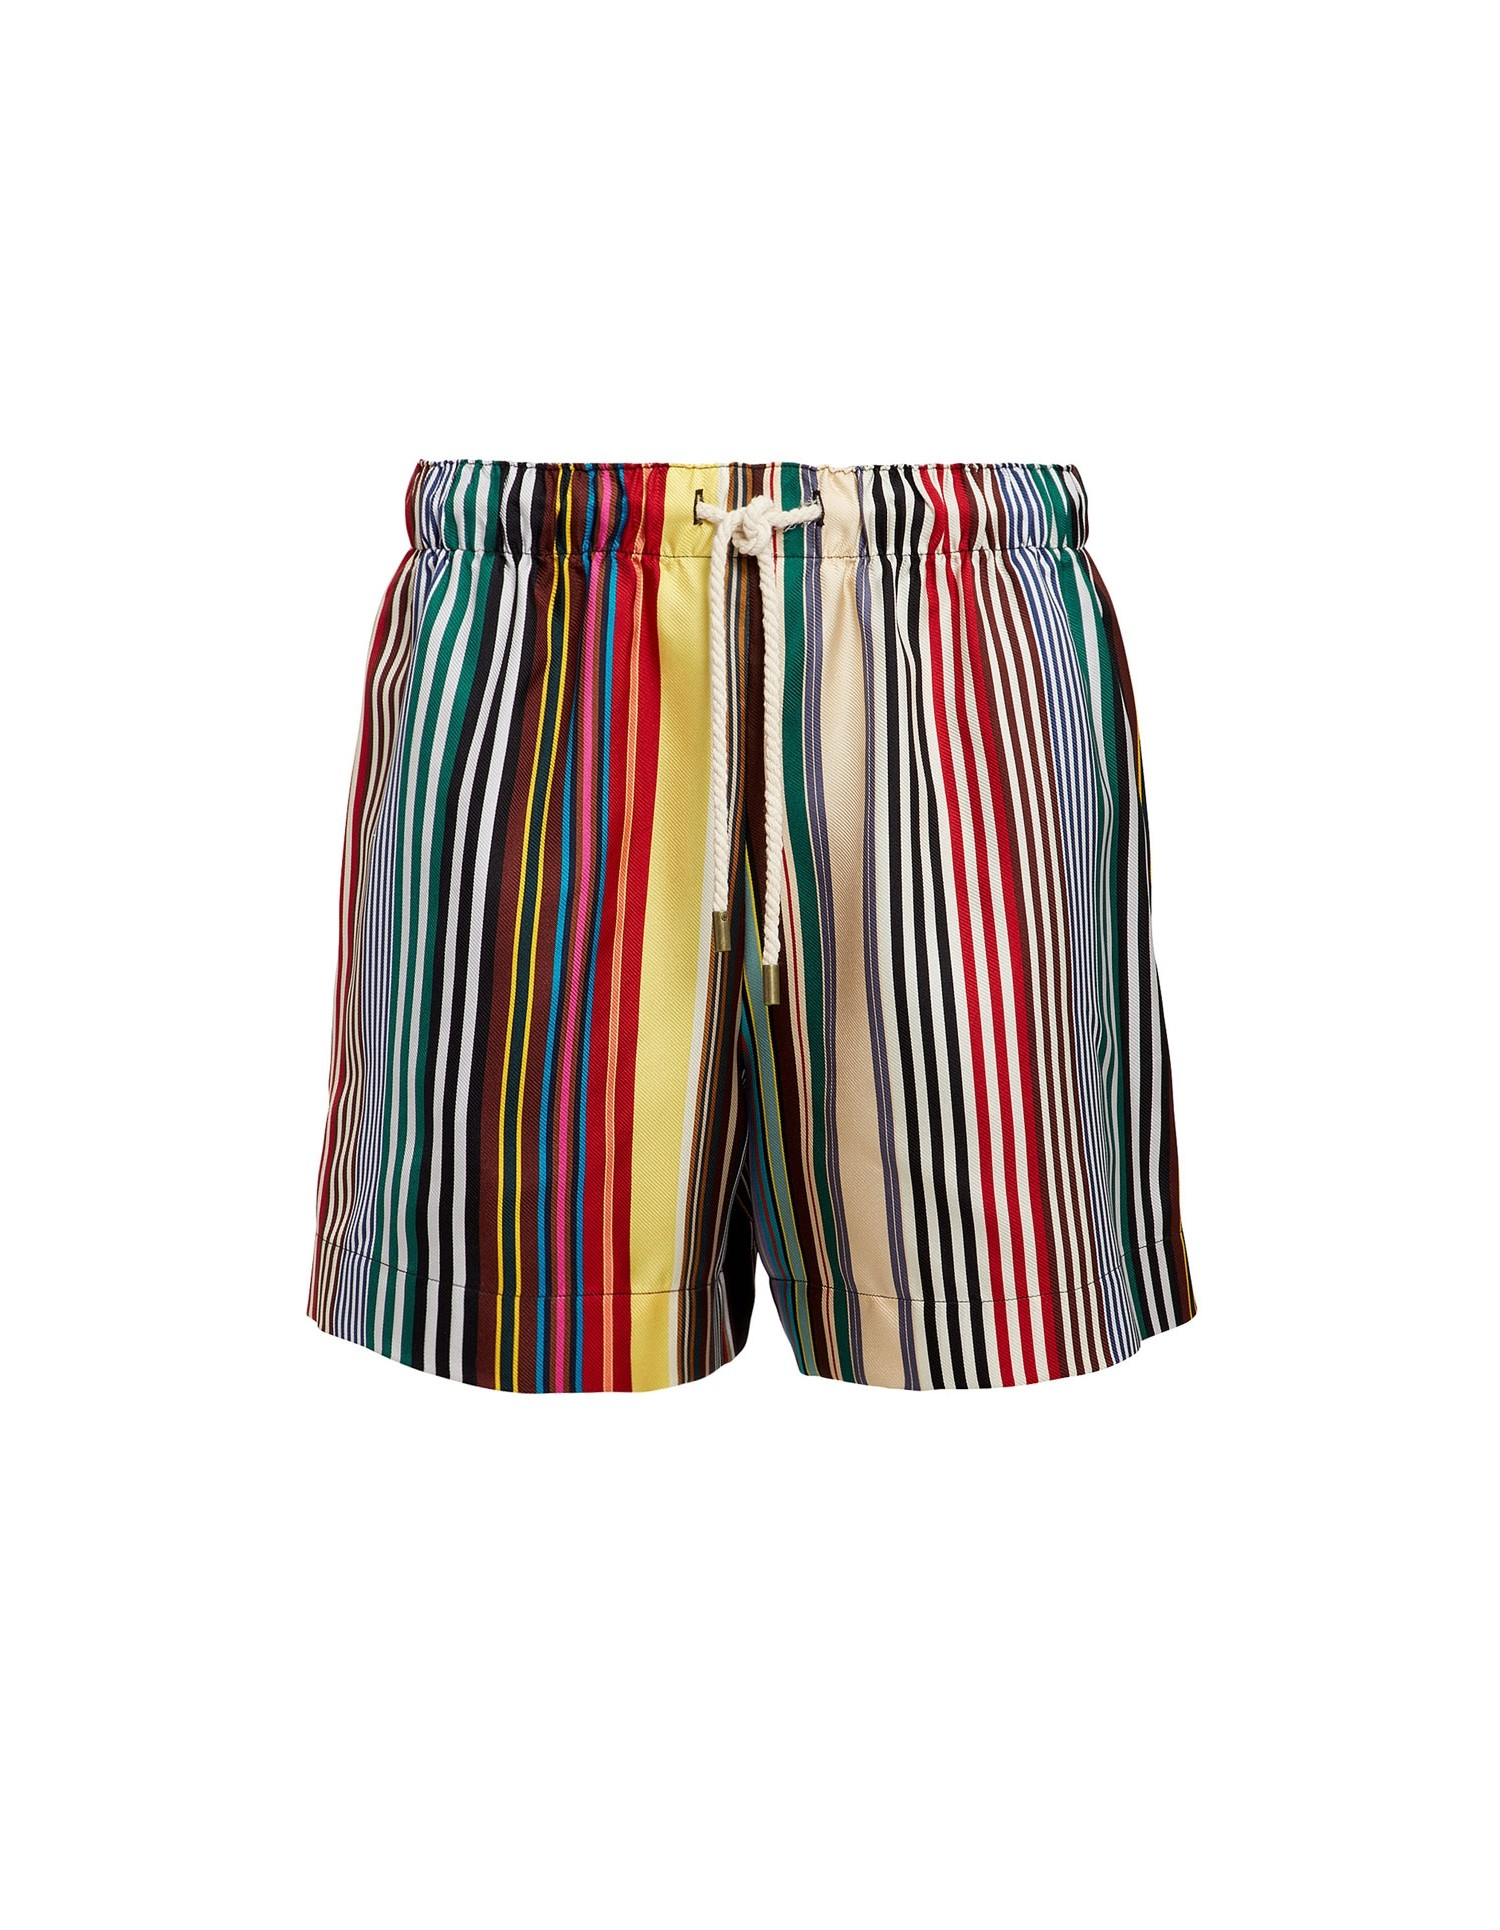 Monse Women's Rainbow Mid-Length Shorts on Model